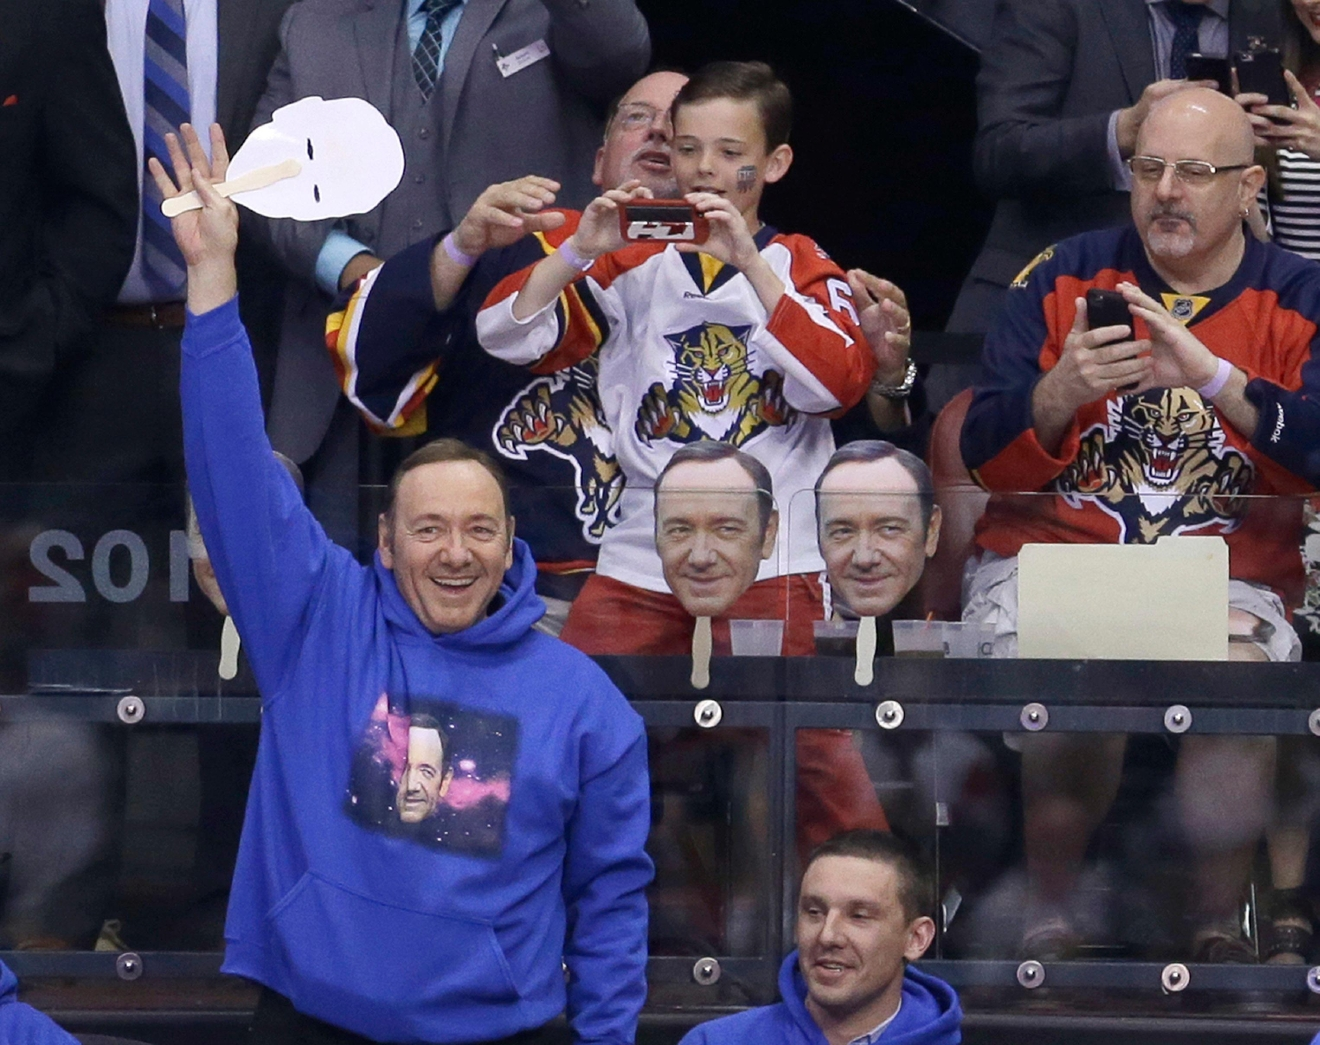 Actor Kevin Spacey waves to the fans during an NHL hockey game between the Florida Panthers and the Detroit Red Wings in Sunrise, Fla., Saturday, March 19, 2016. (AP Photo/Alan Diaz)